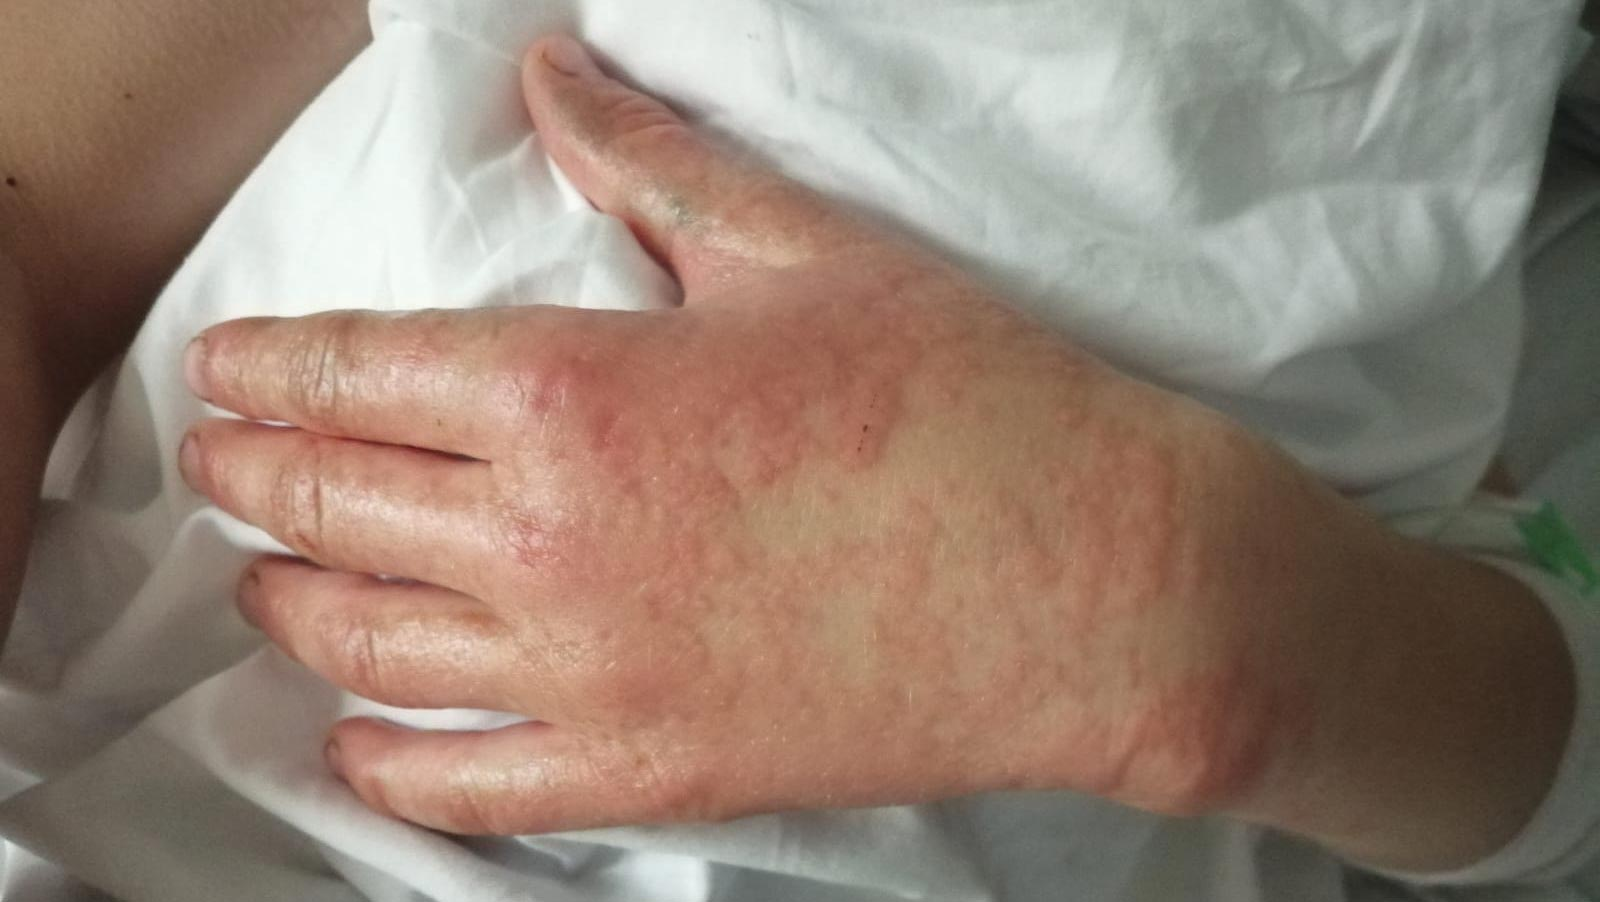 Hand on pillow showing infection